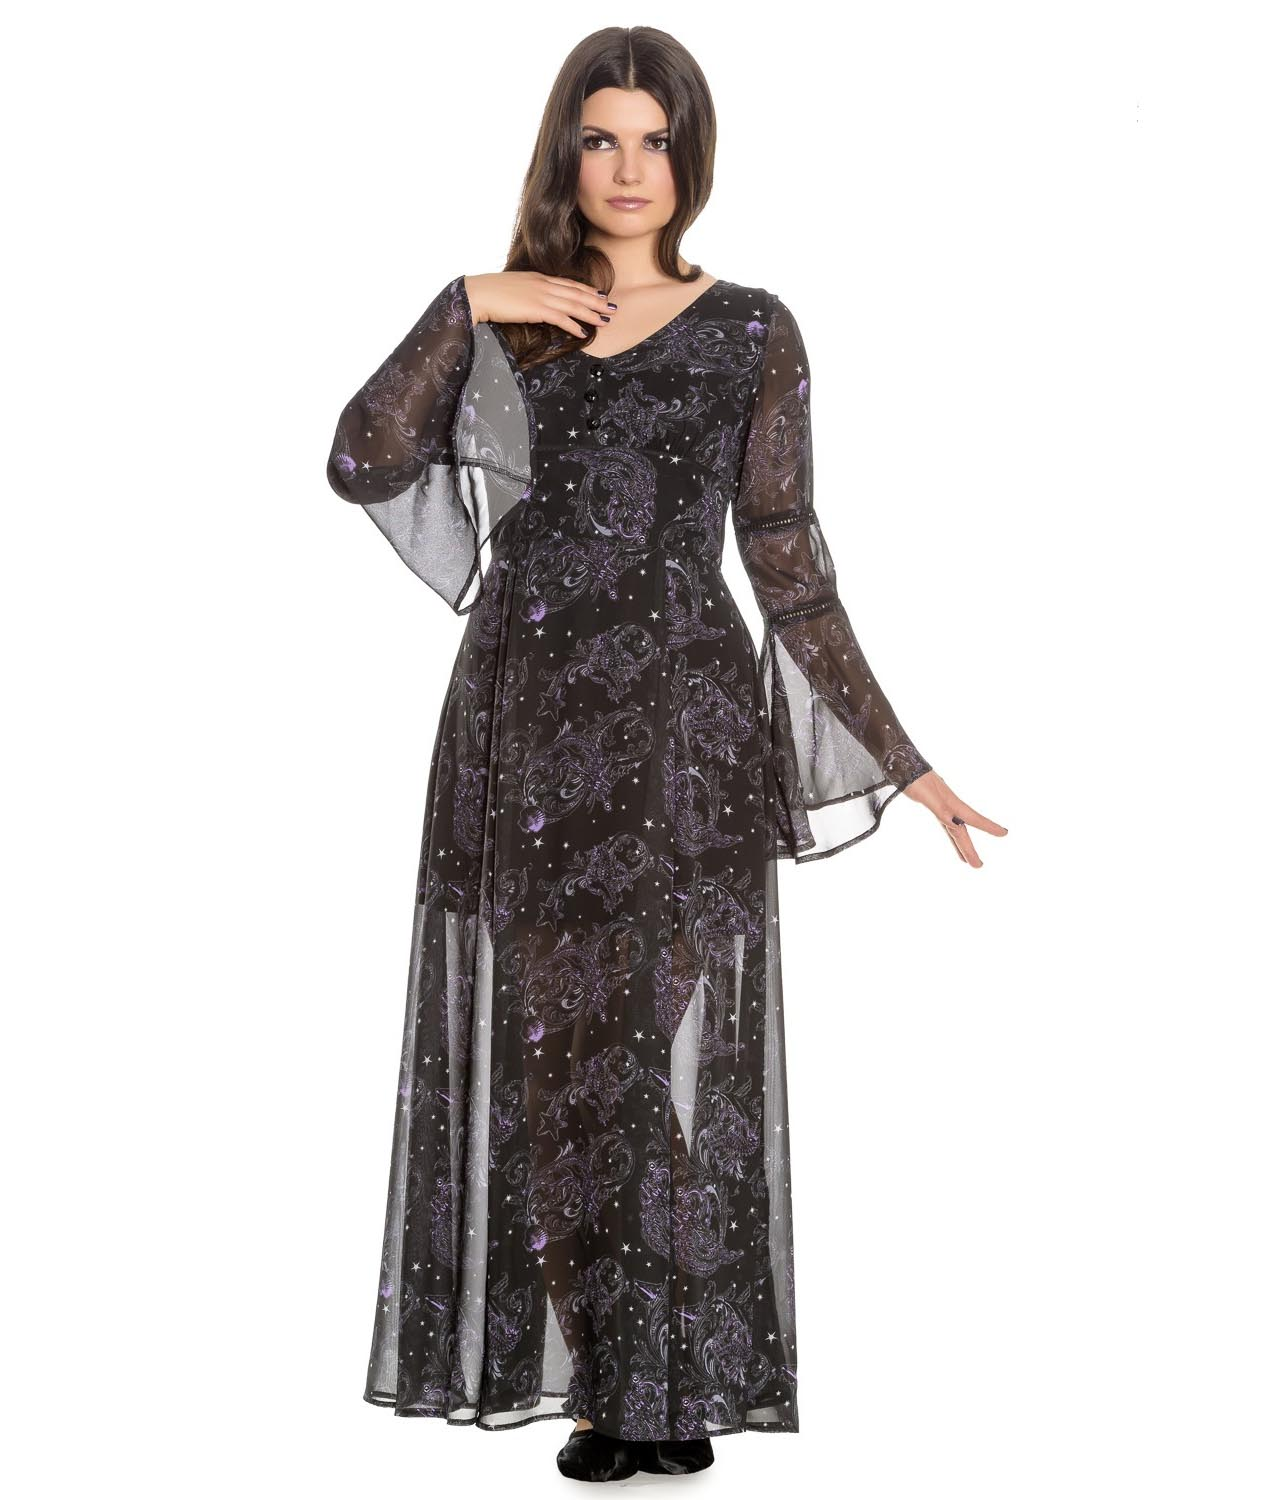 Hell-Bunny-Spin-Doctor-Goth-Maxi-Dress-DARK-SEA-Mermaid-Skeletons-All-Sizes thumbnail 31